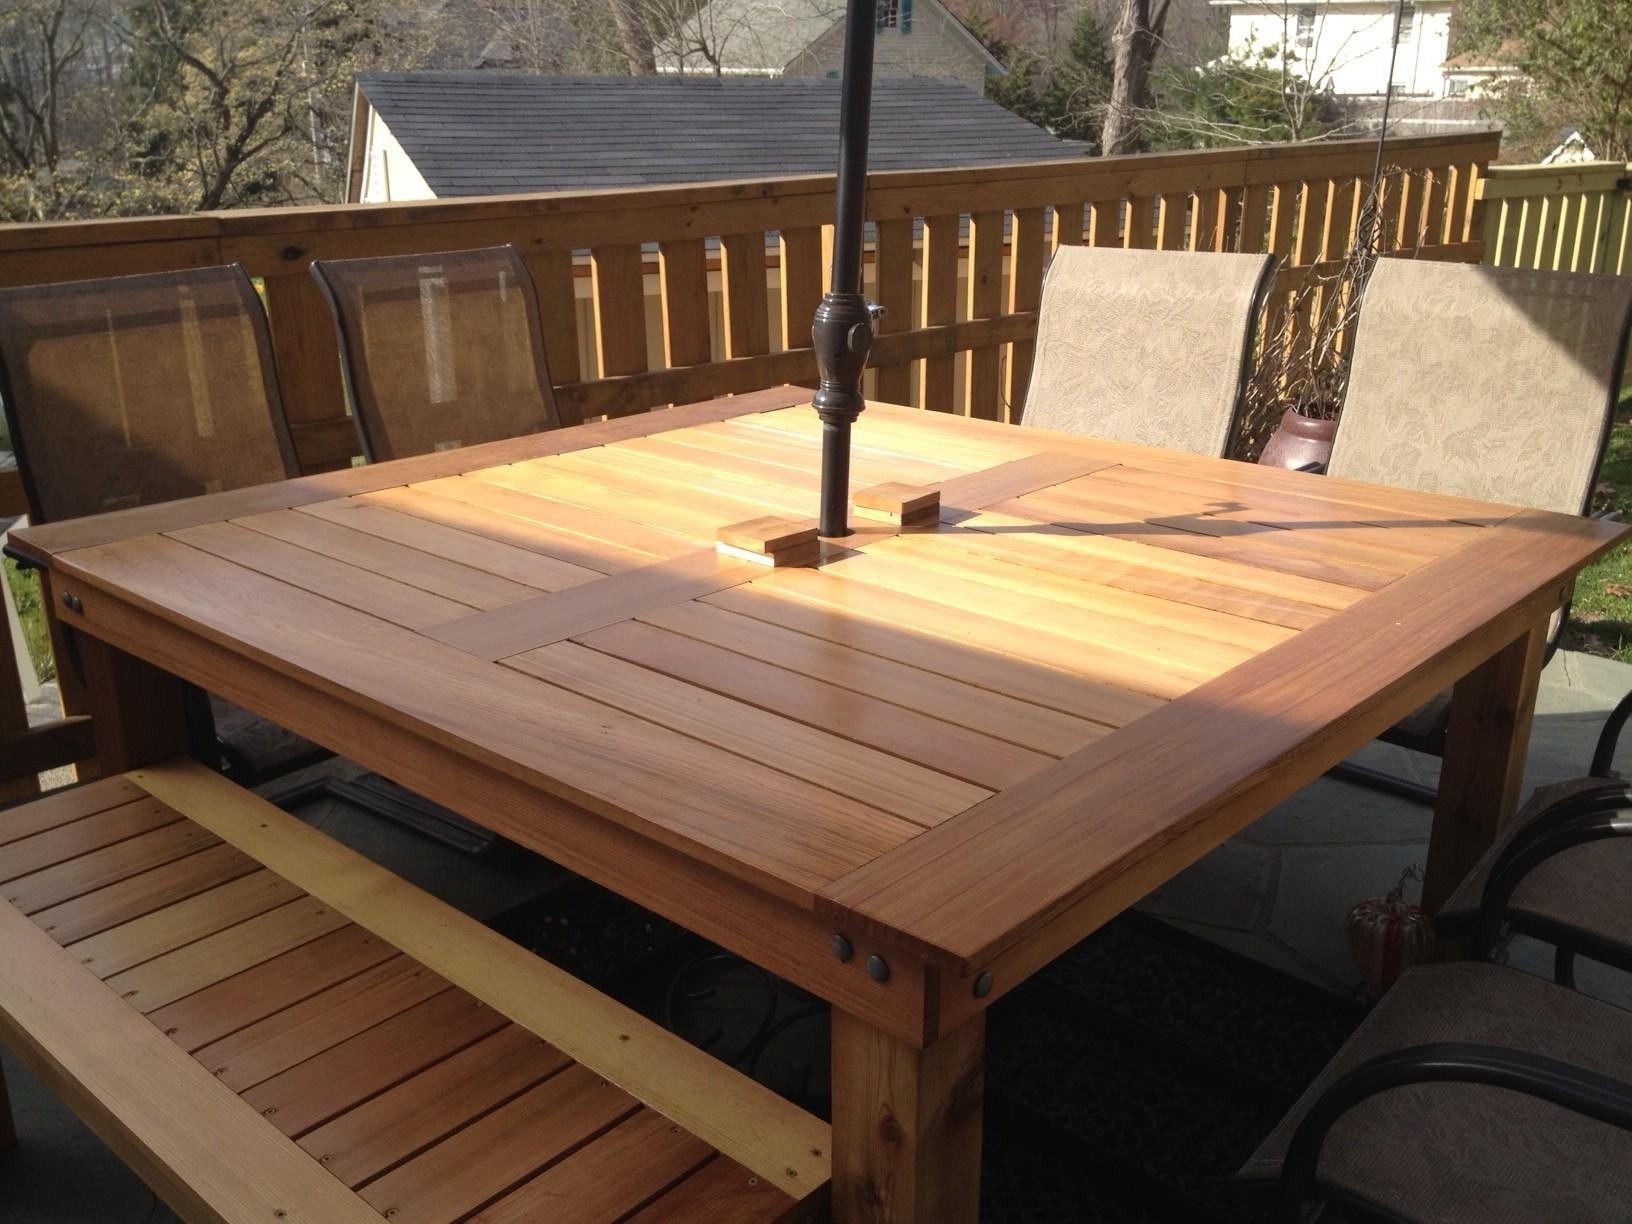 Lovely Patio Table Plans Ana White Simple Square Cedar